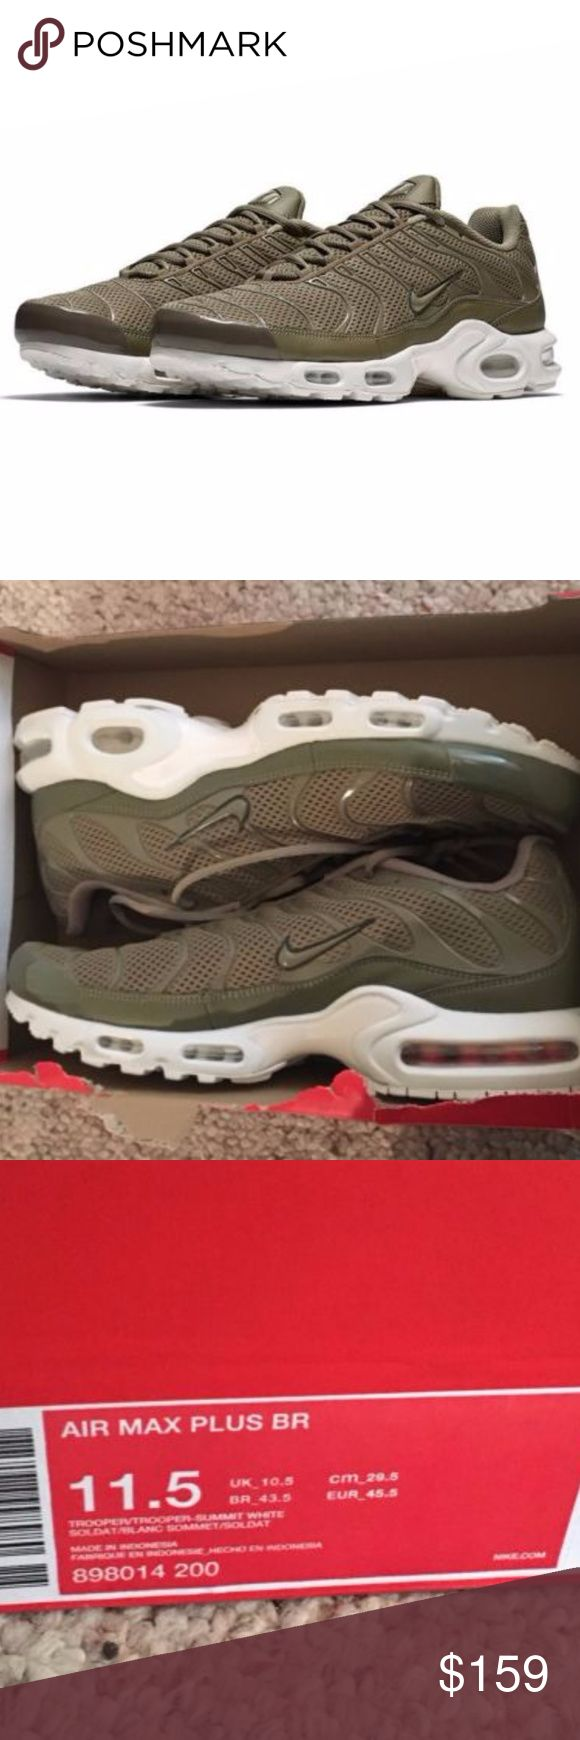 Nike Air Max Plus Breeze Khaki Sneakers 11.5 New in box but lid of box missing. Hard to find and sought after color way. Many are selling for $200+  Mens size 11.5 Nike Air Max Plus Breeze Cargo Khaki 898014-200 Men's Sneakers Shoes sz 11.5. Nike Shoes Sn http://feedproxy.google.com/fashiongoshoes